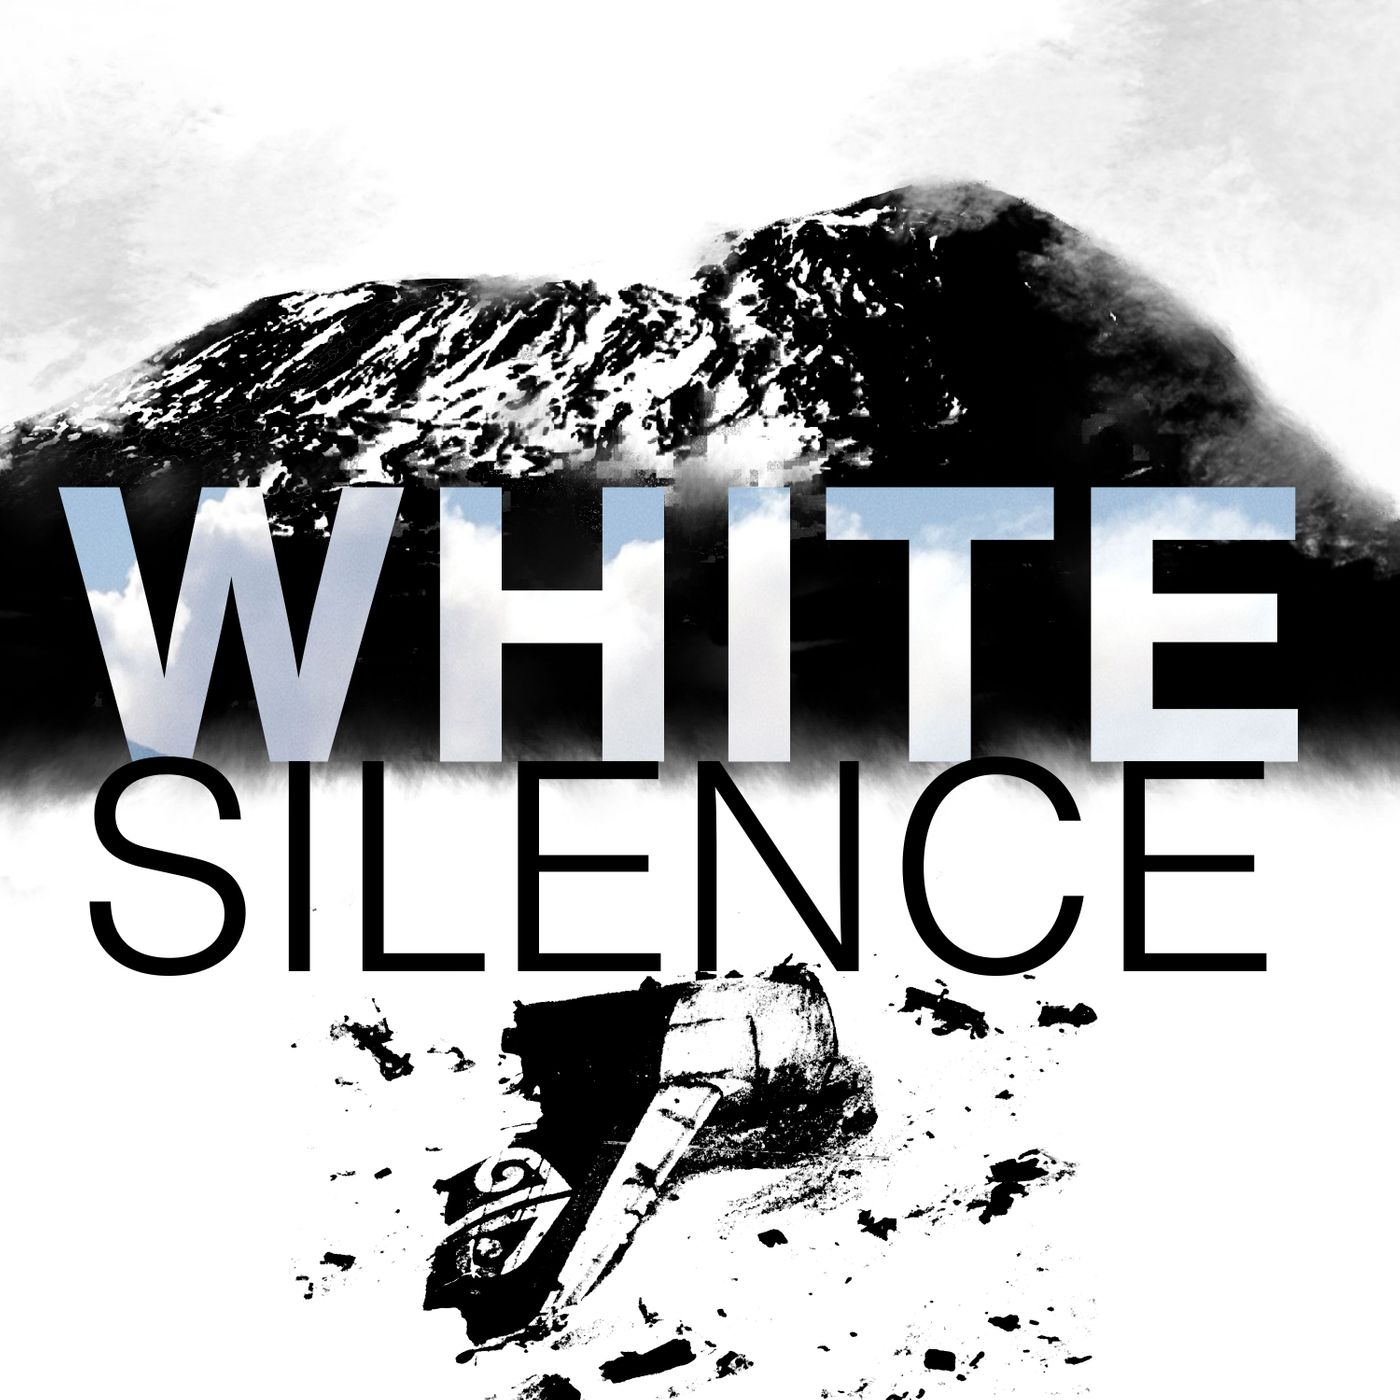 Introducing: White Silence, a podcast about the Erebus disaster